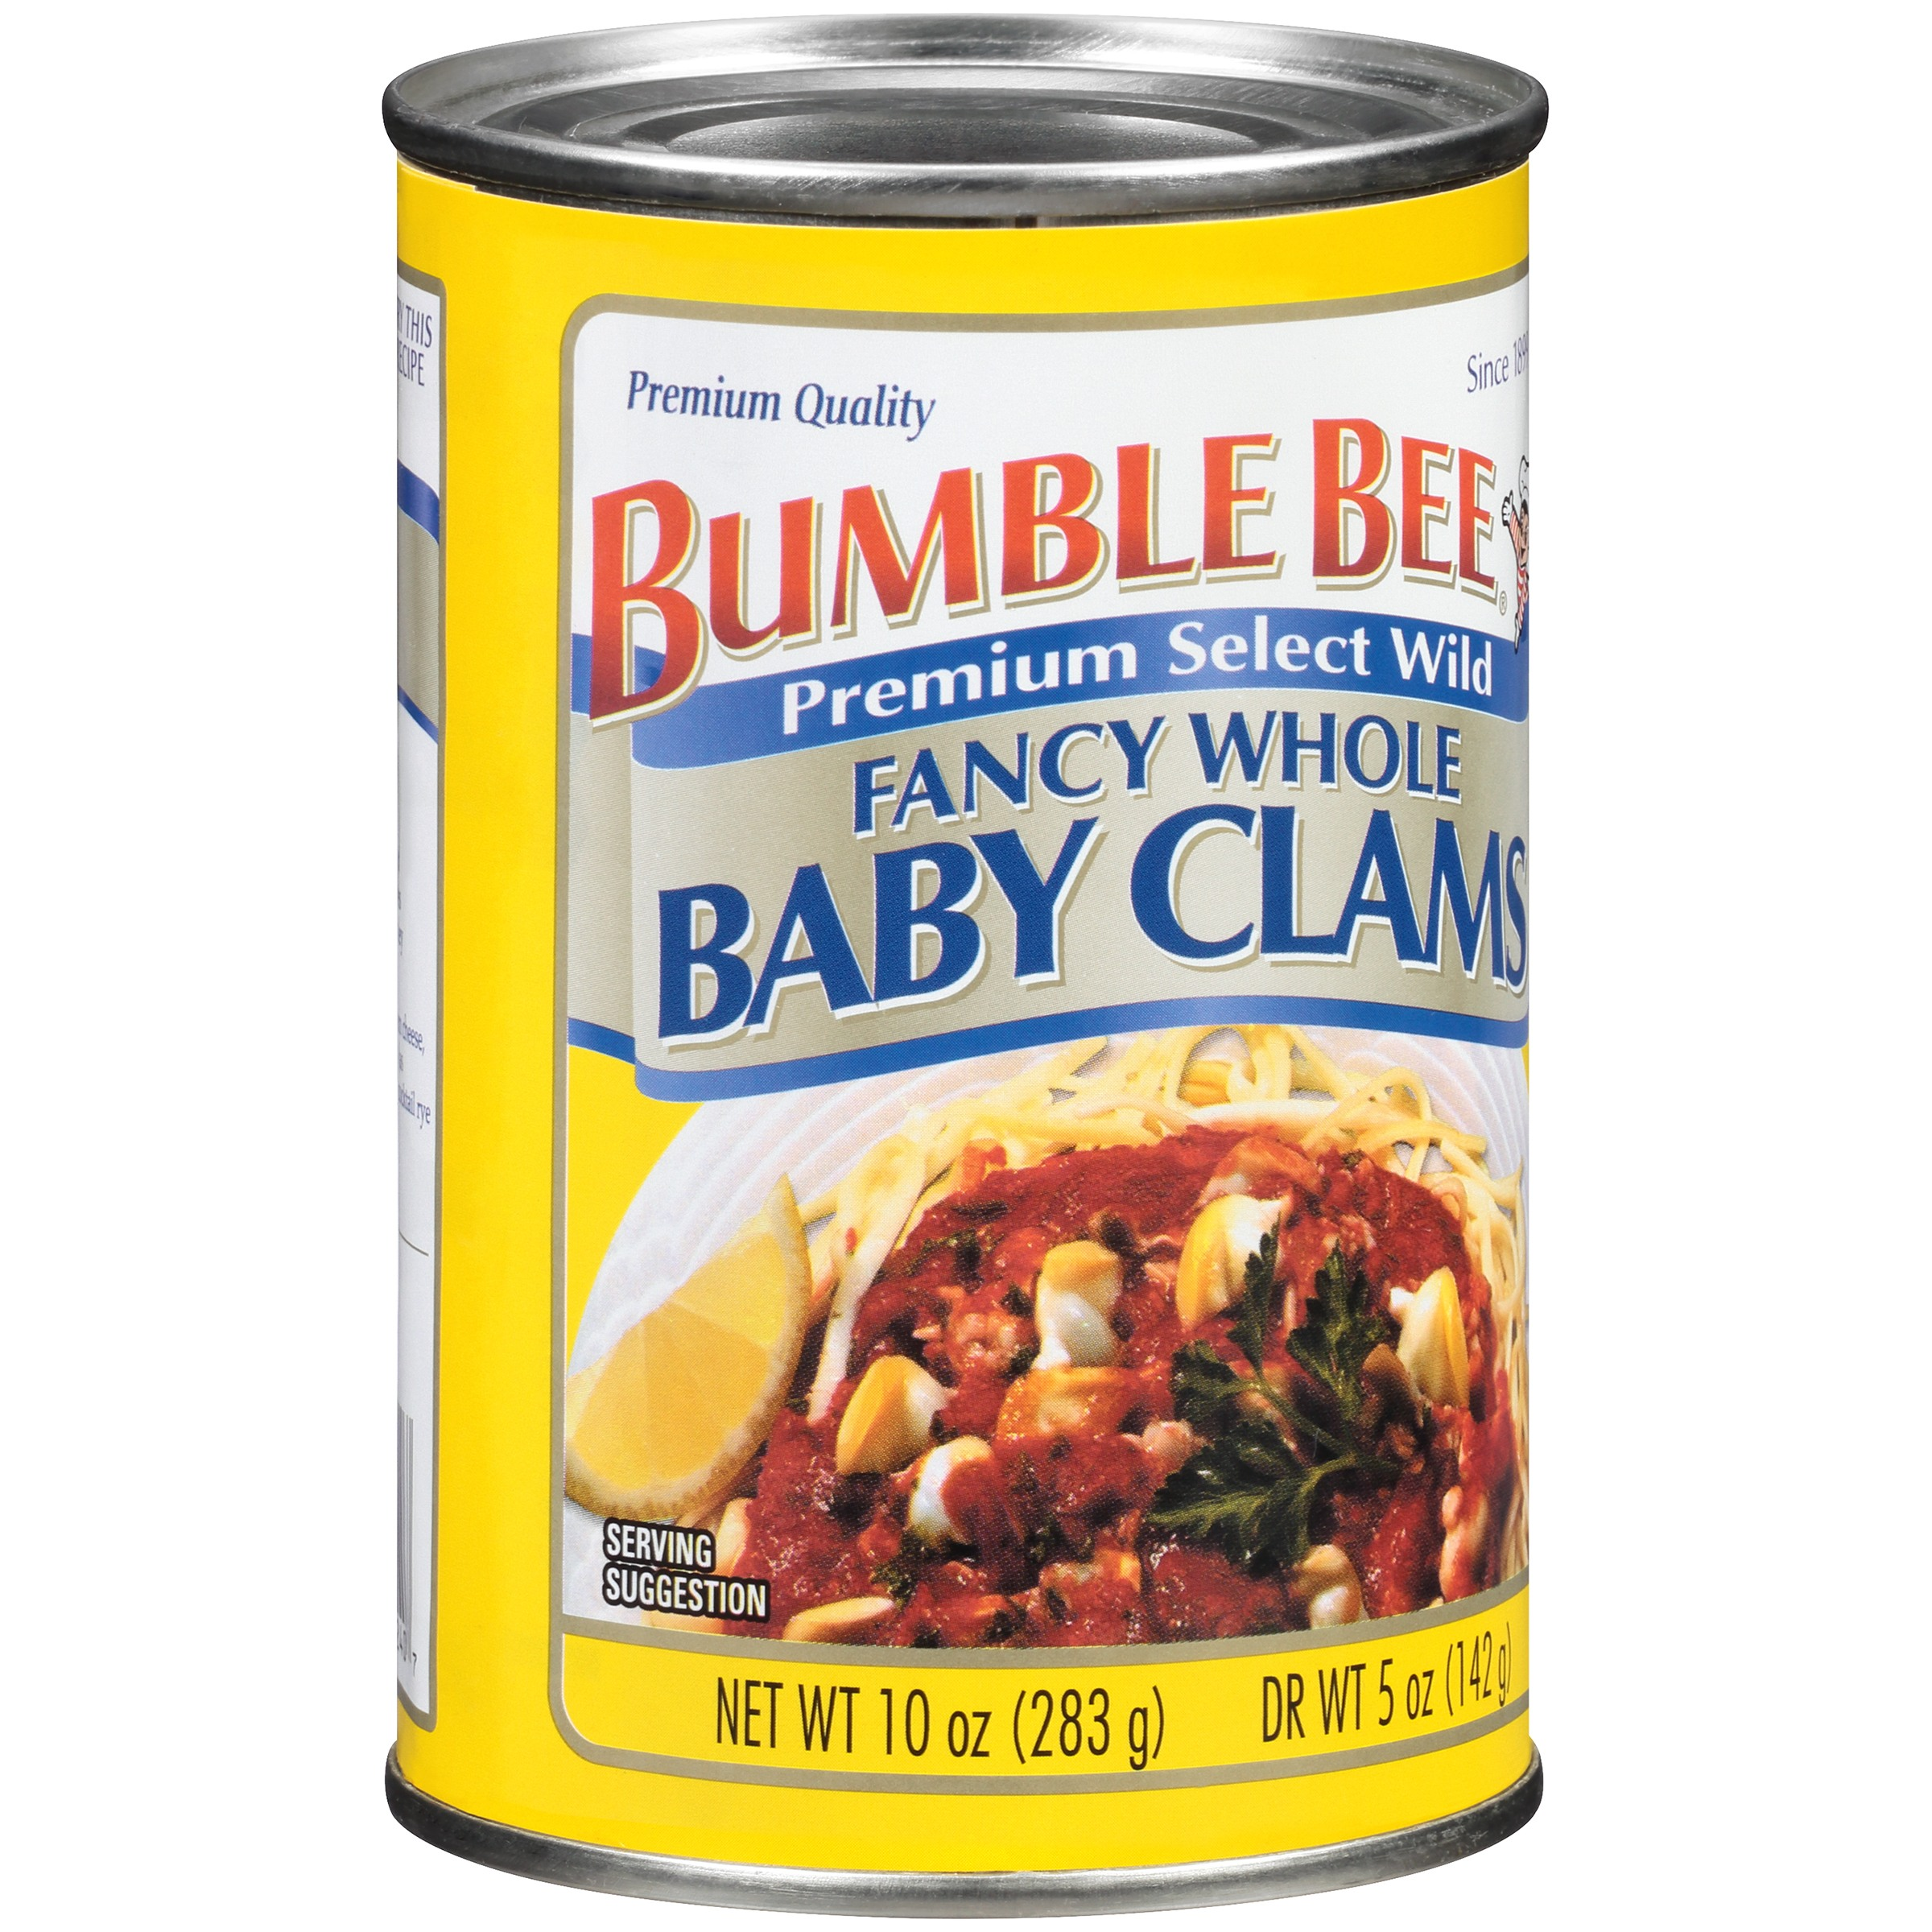 Bumble Bee Wild Fancy Whole Baby Clams, 10 oz Can